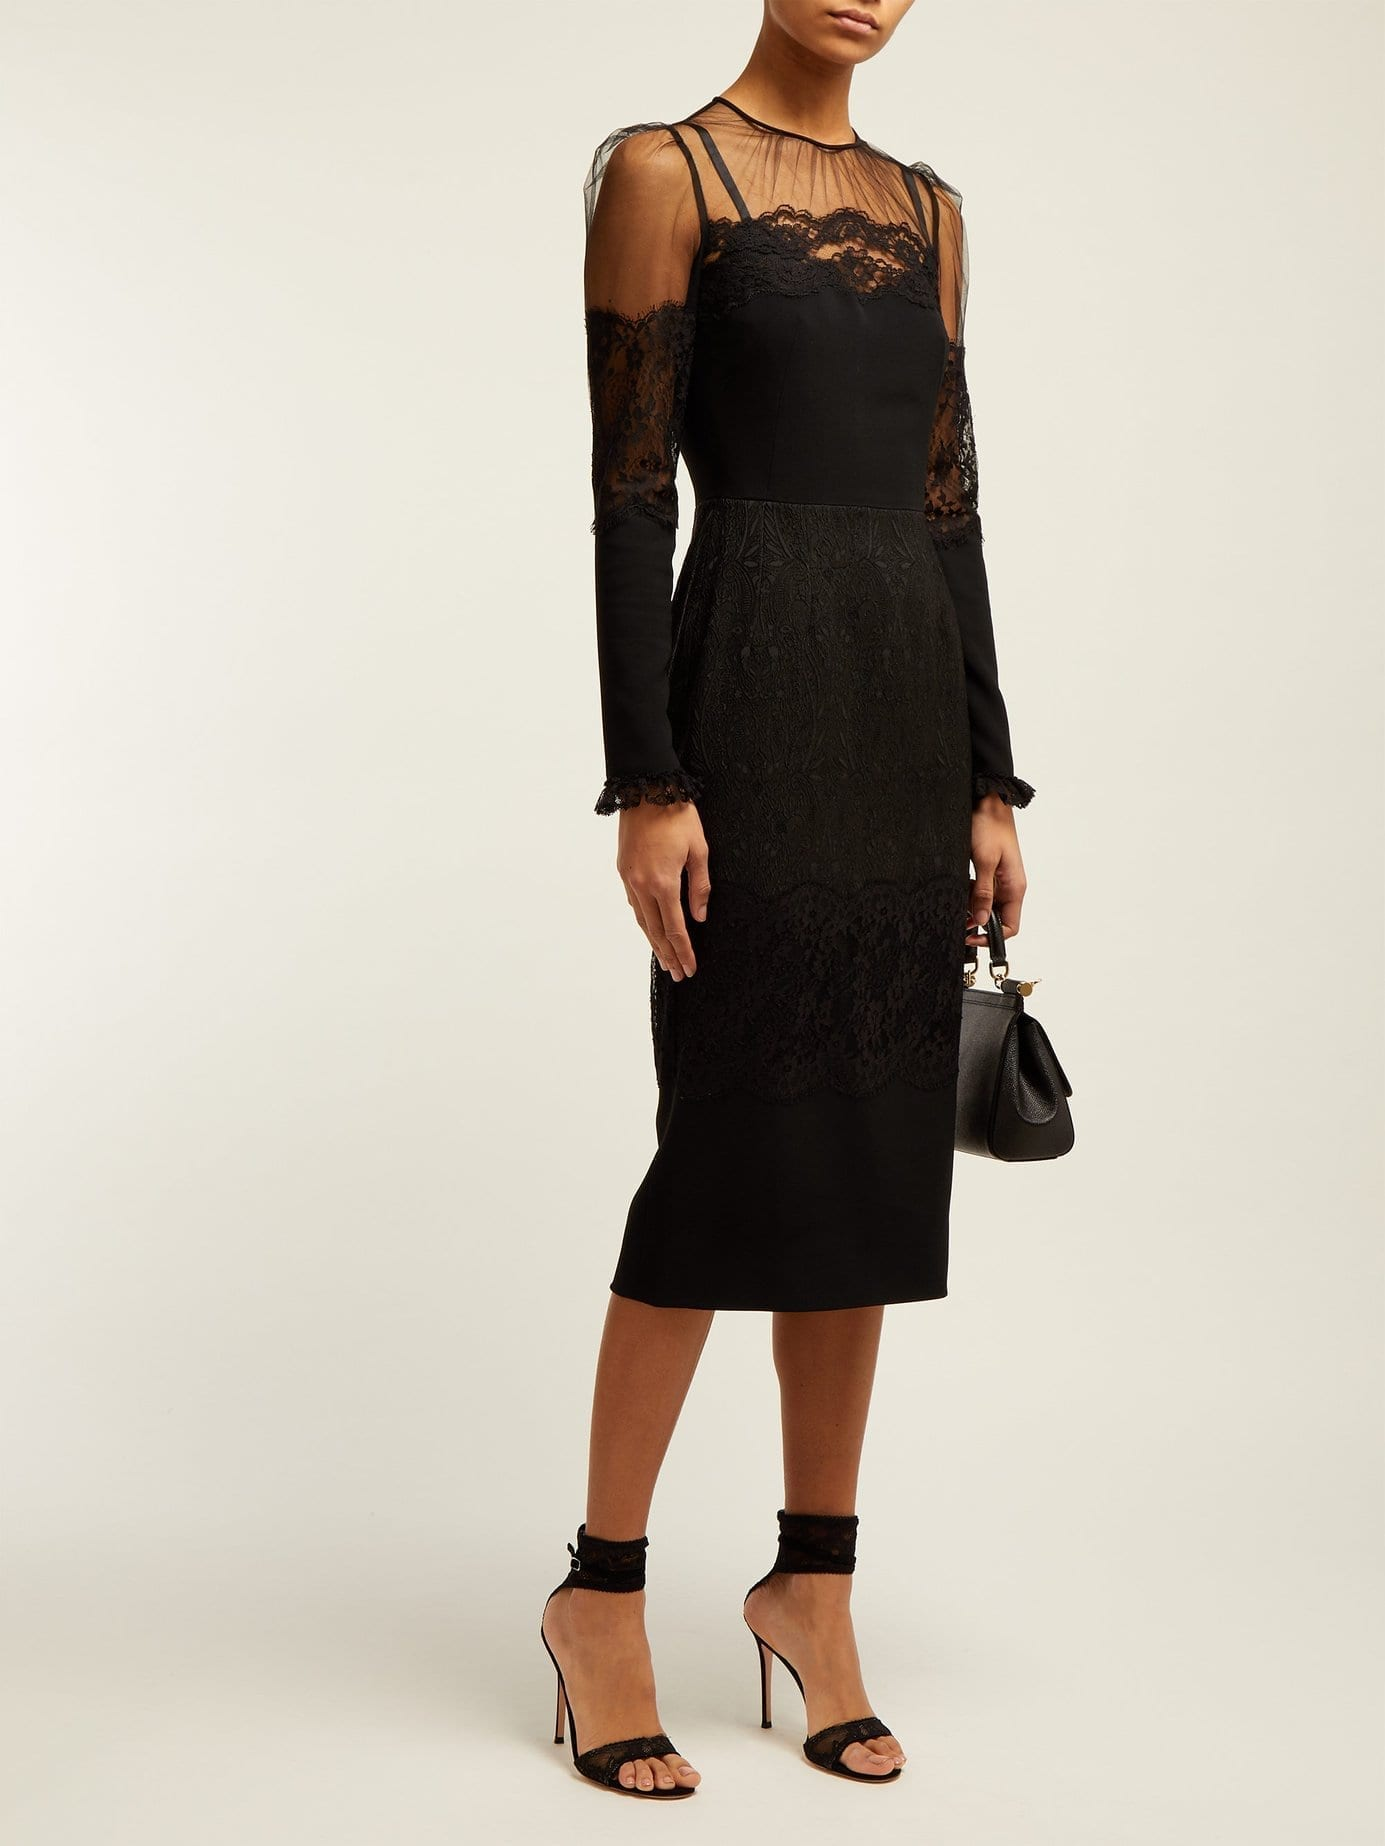 DOLCE & GABBANA High-neck Lace And Tulle Black Dress